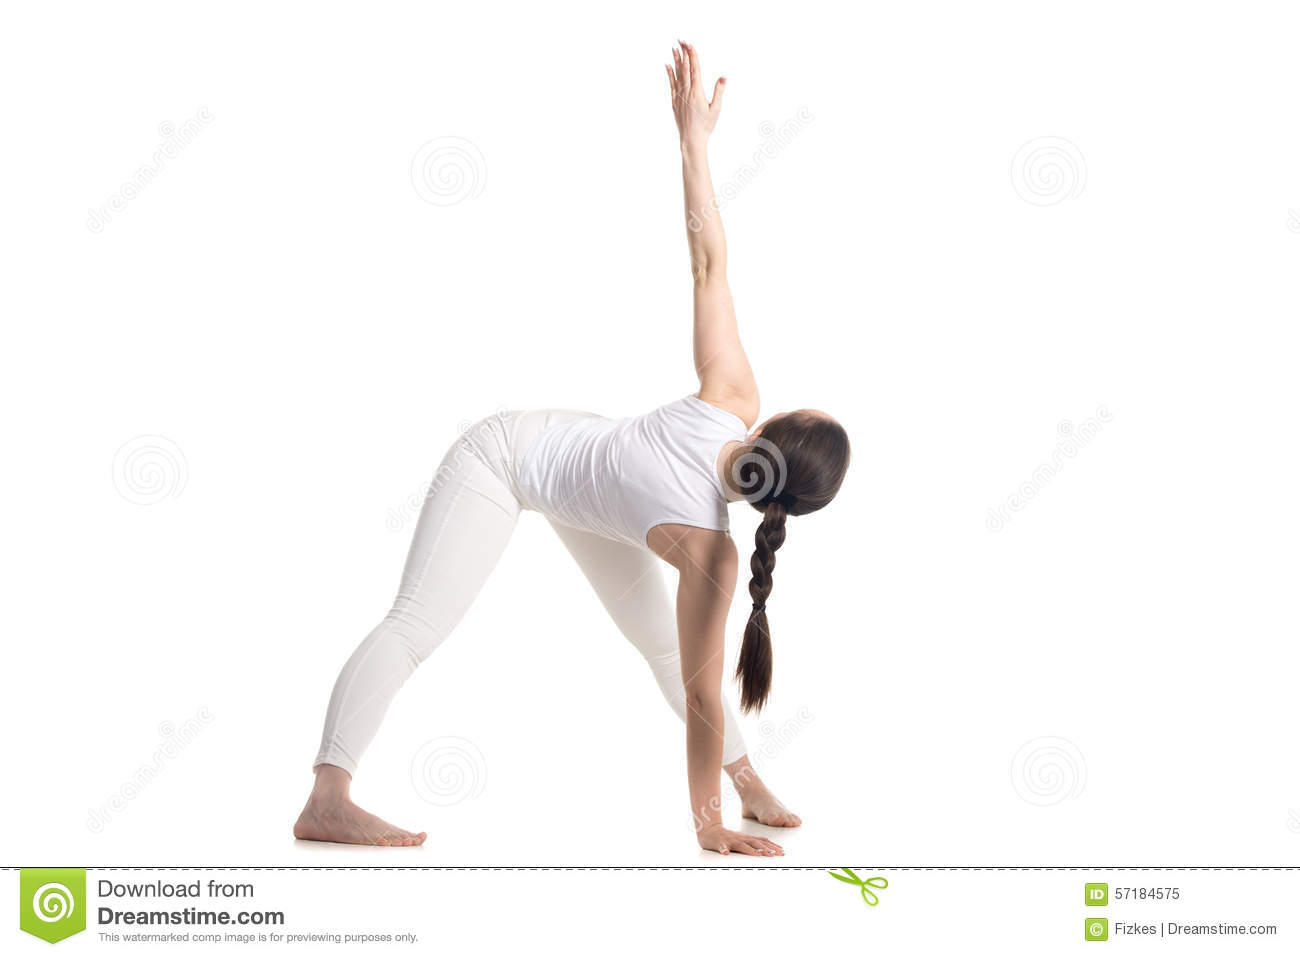 Yoga Introduction further N Strength Training Weight Loss X further Yoga furthermore Beka Fitness as well B D C C A Ff D Bec Ee. on ashtanga yoga weight loss